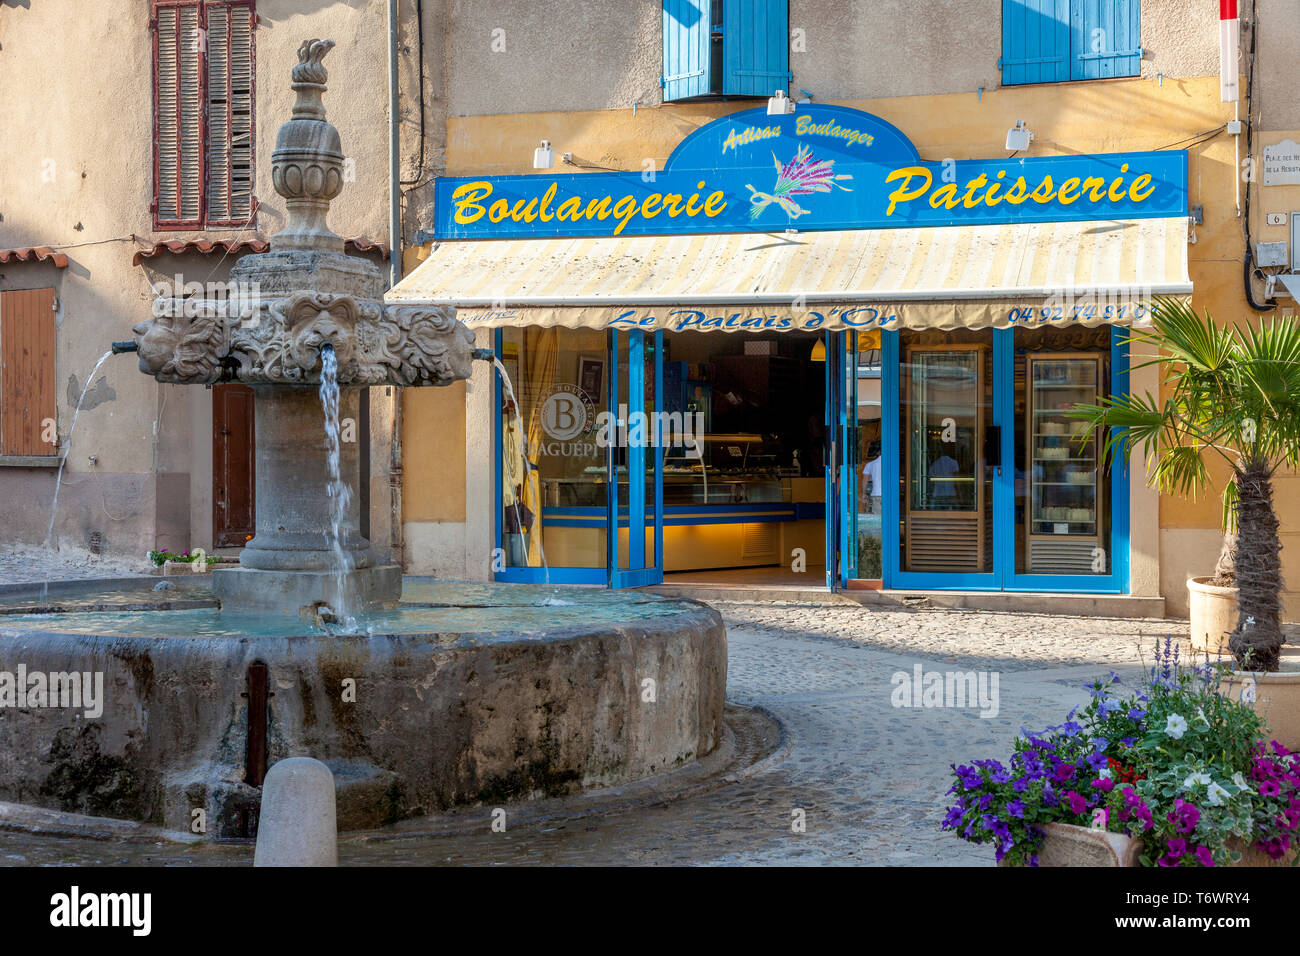 Boulangerie Salon De Provence Boulangerie Stock Photos Boulangerie Stock Images Alamy